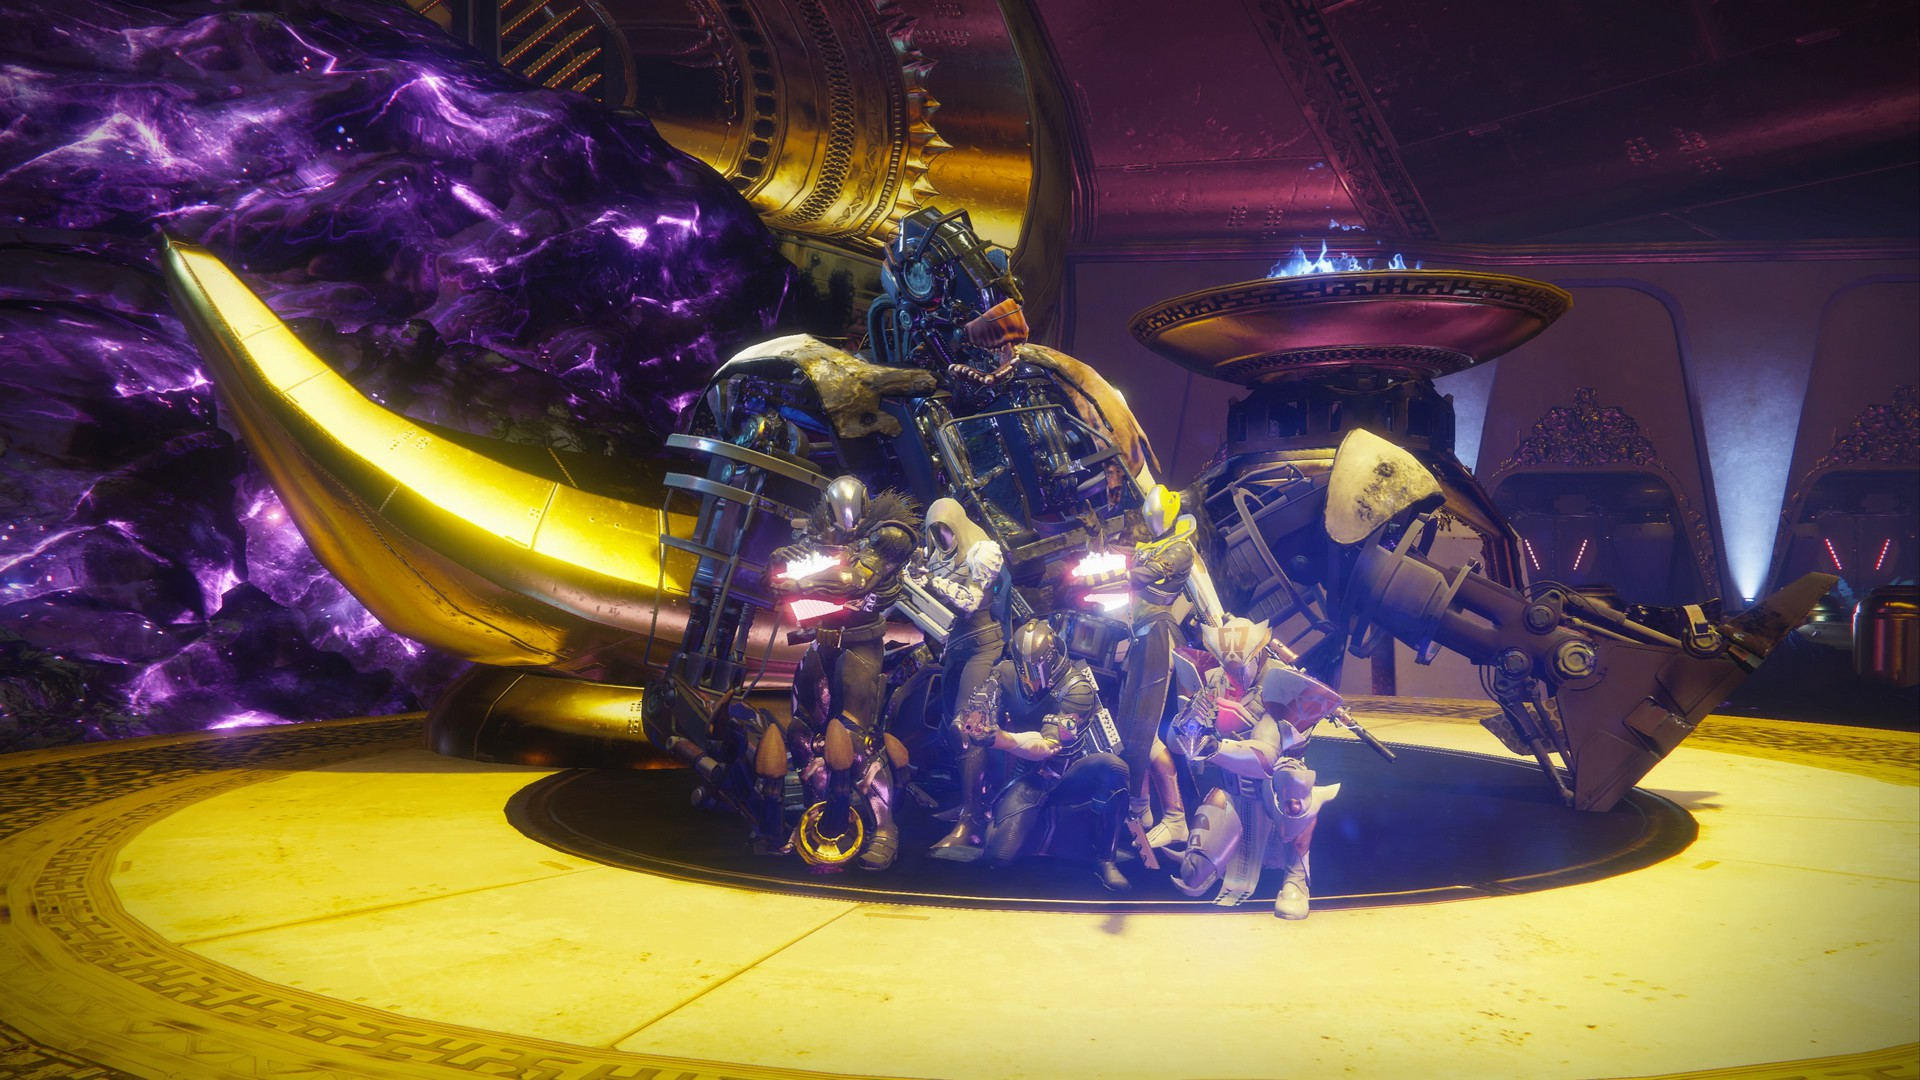 Calus is Schorched